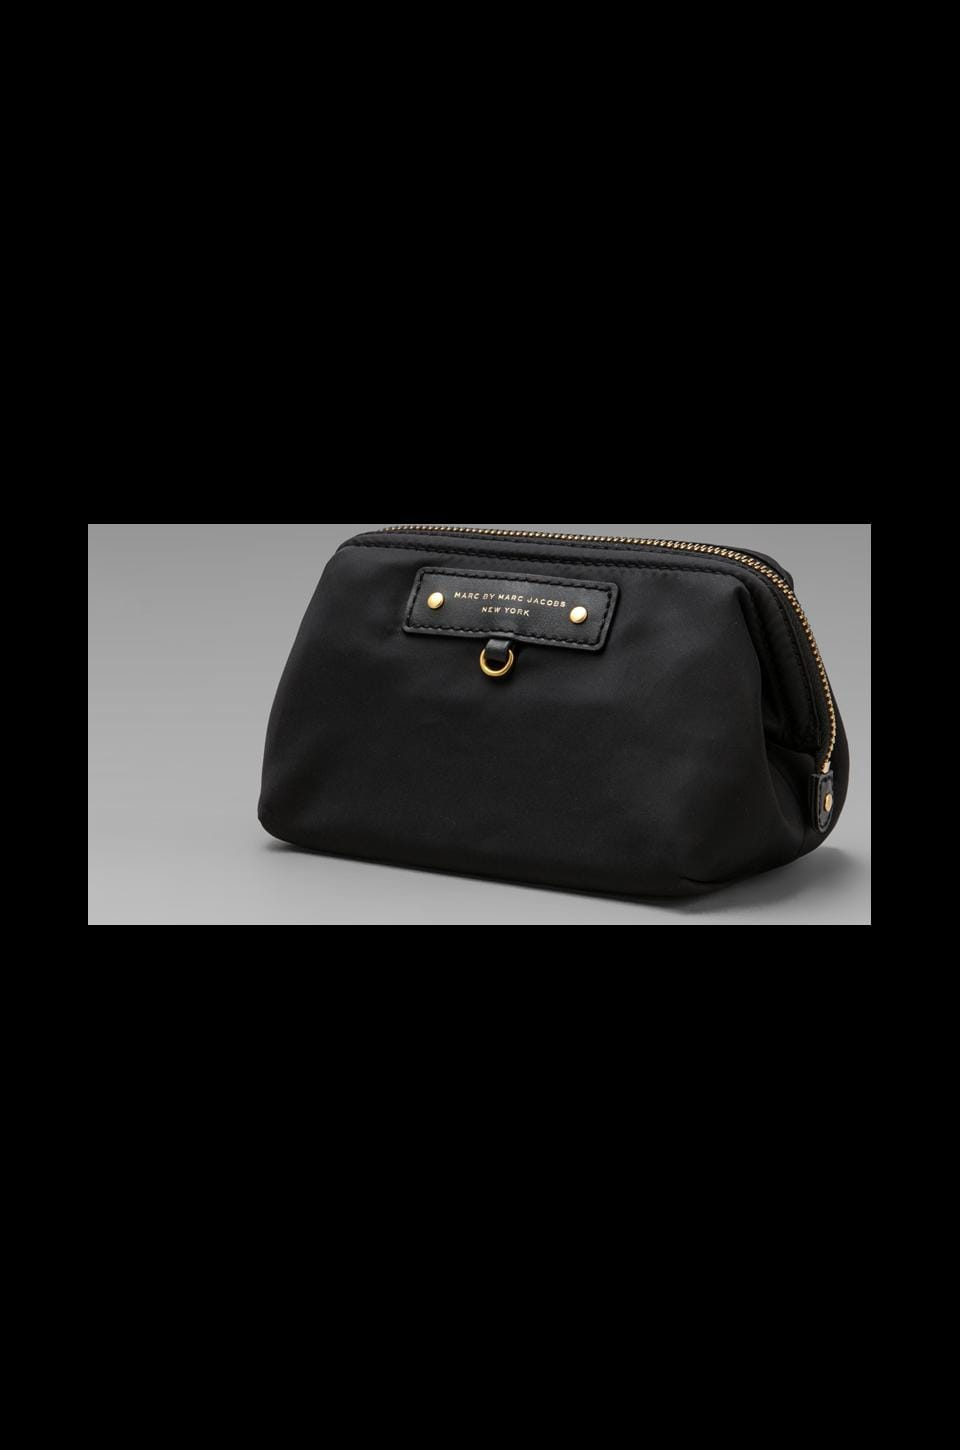 Marc by Marc Jacobs Pochette Big Bliz en Noir